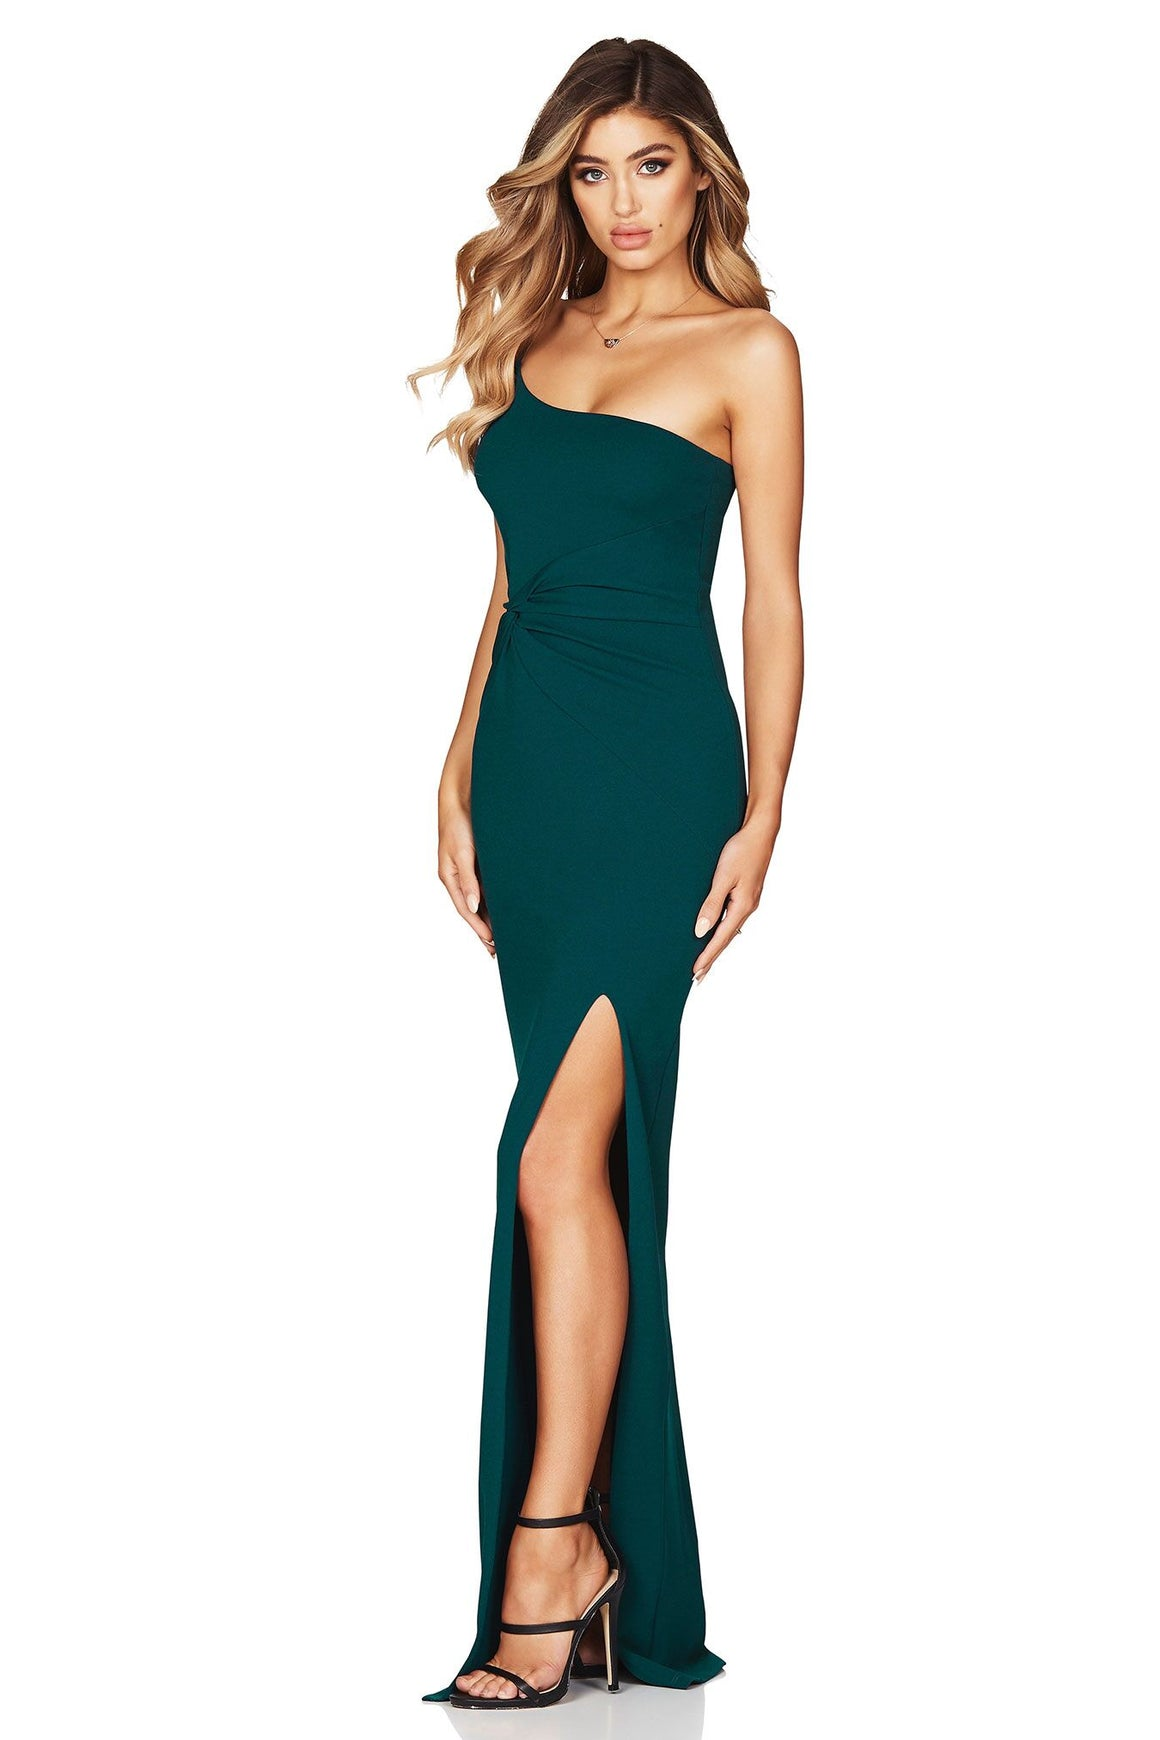 Lust One Shoulder Gown - Teal